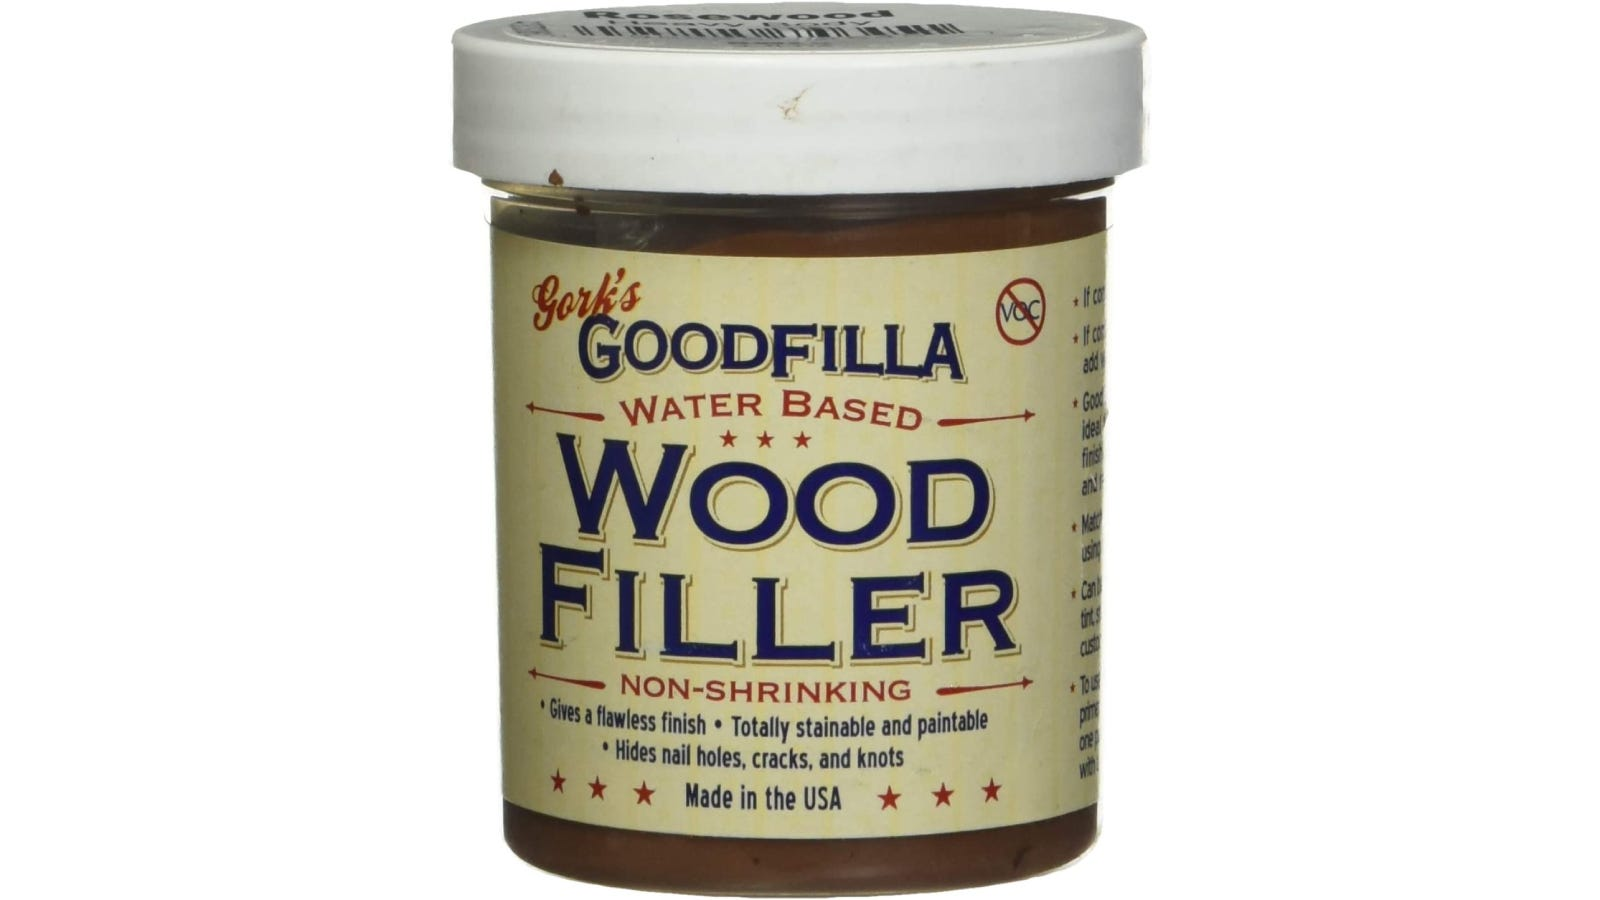 A container of Goodfilla water-based wood filler